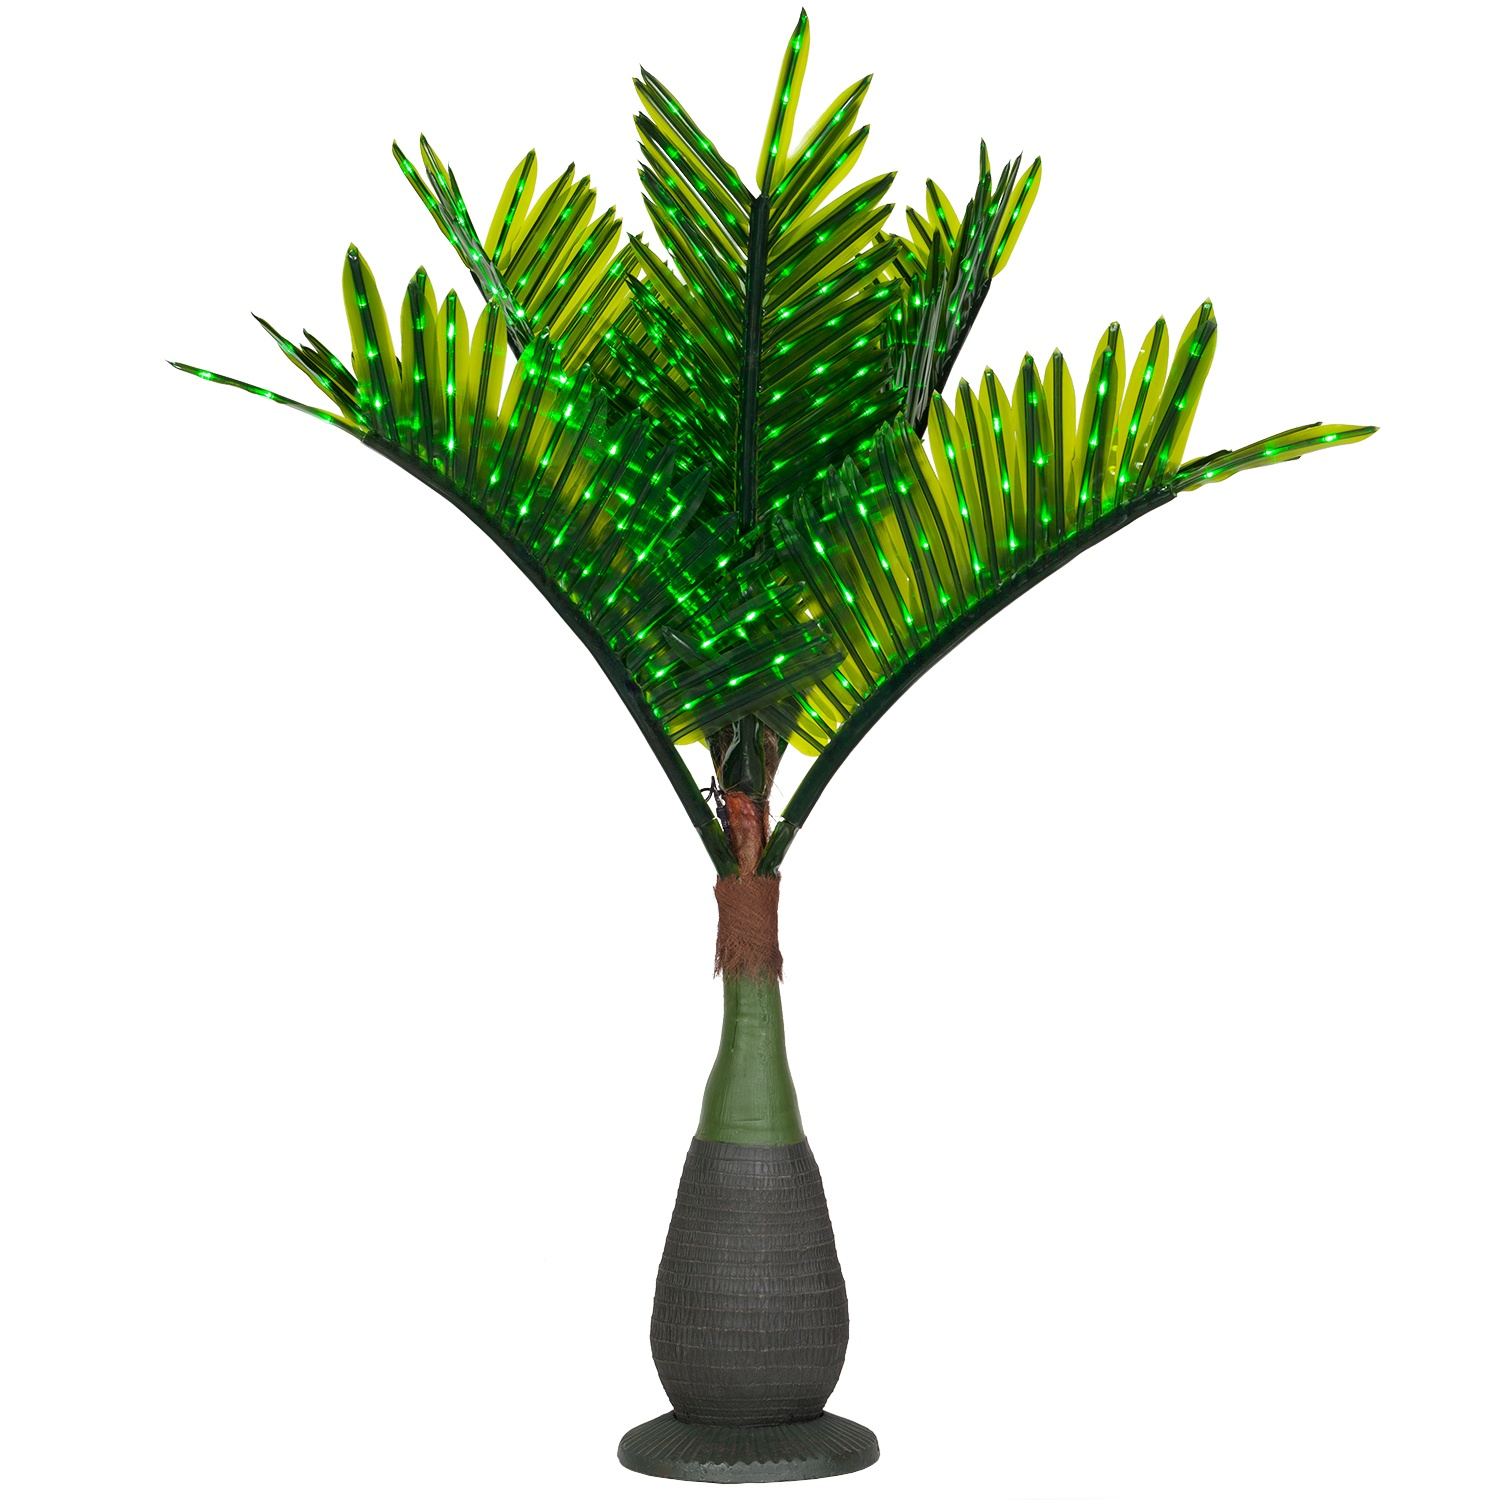 bottle commercial led lighted palm tree with green canopy - Palm Tree Decor